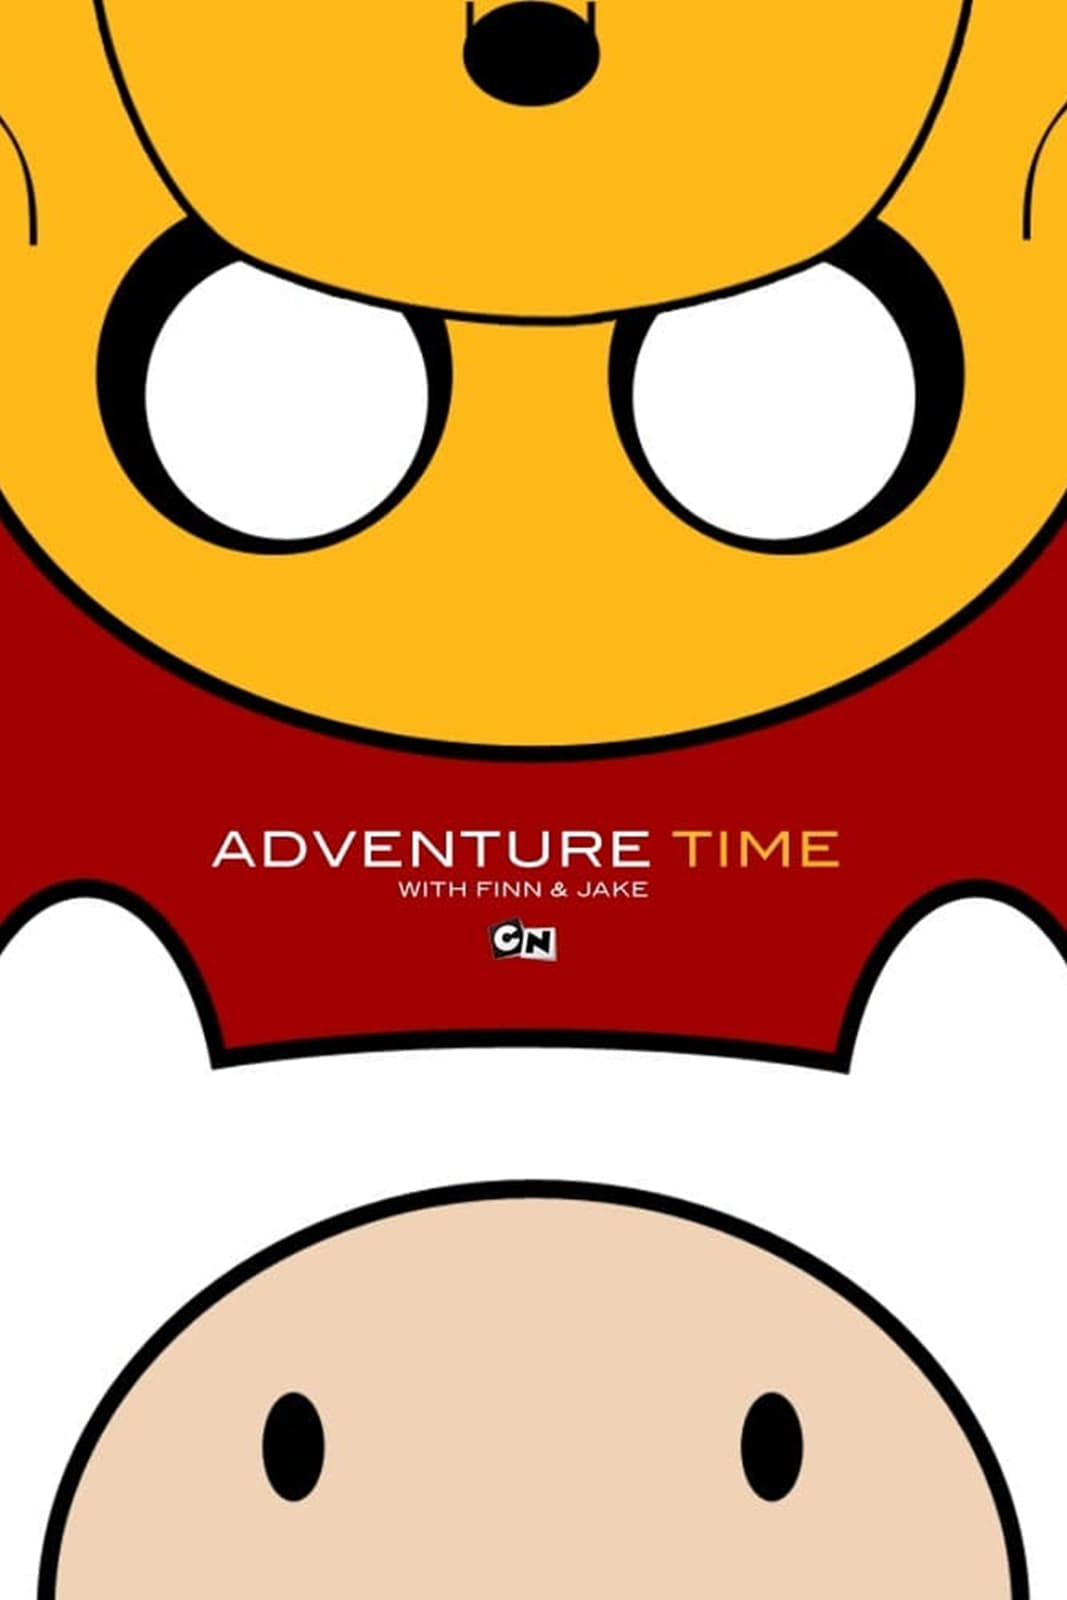 Adventure Time - Similar Series to watch if you like